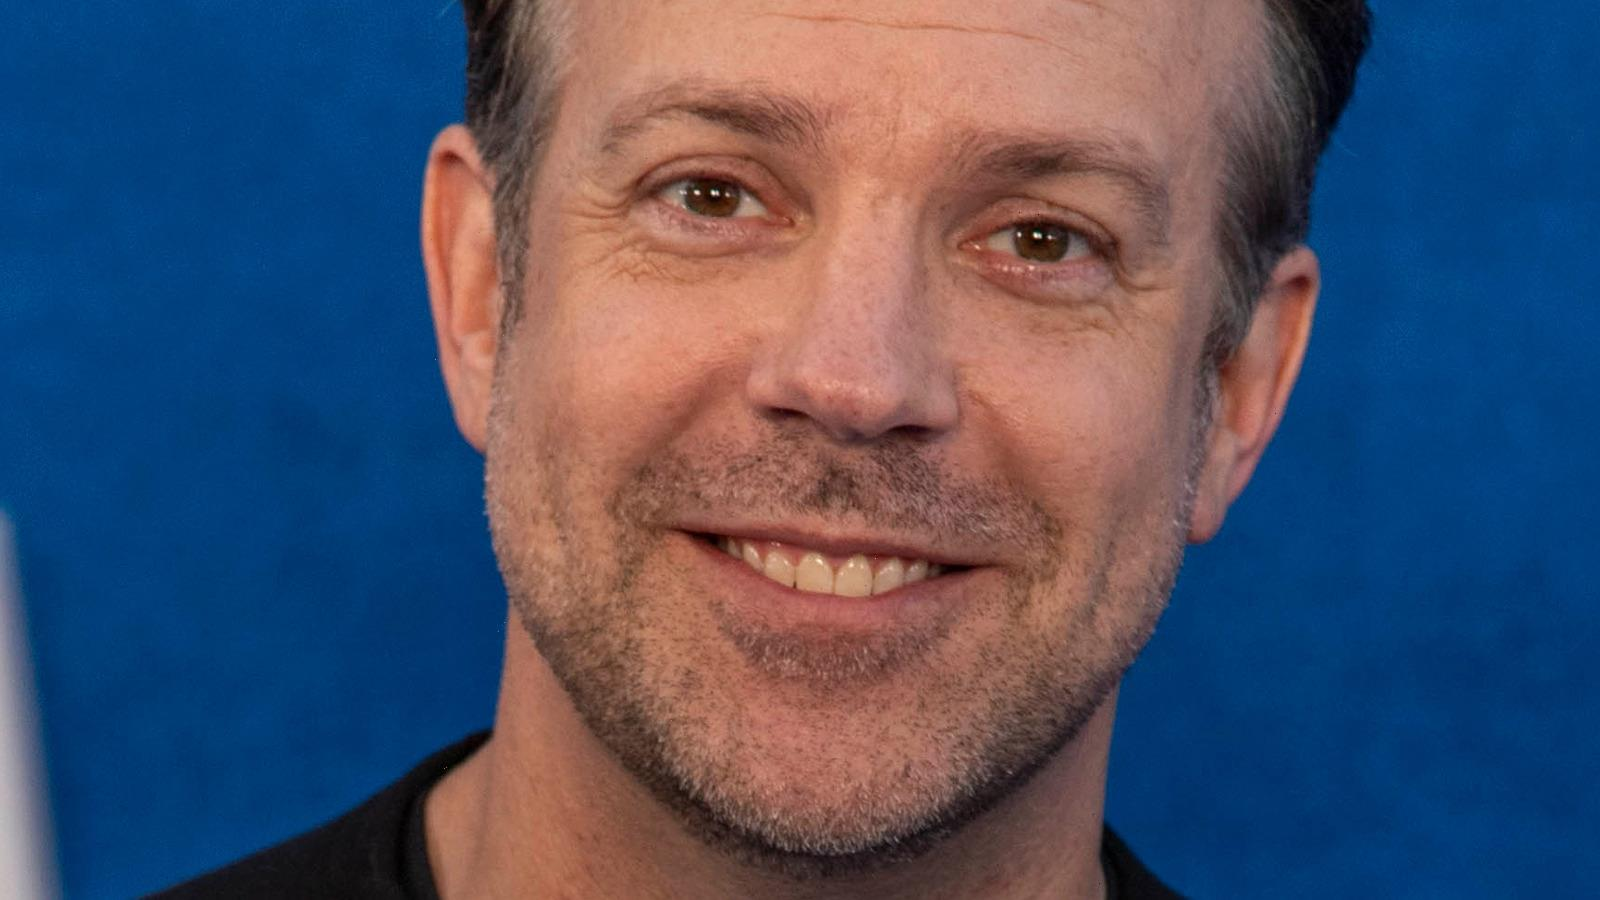 The Anecdote About Jason Sudeikis That Has People Emotional